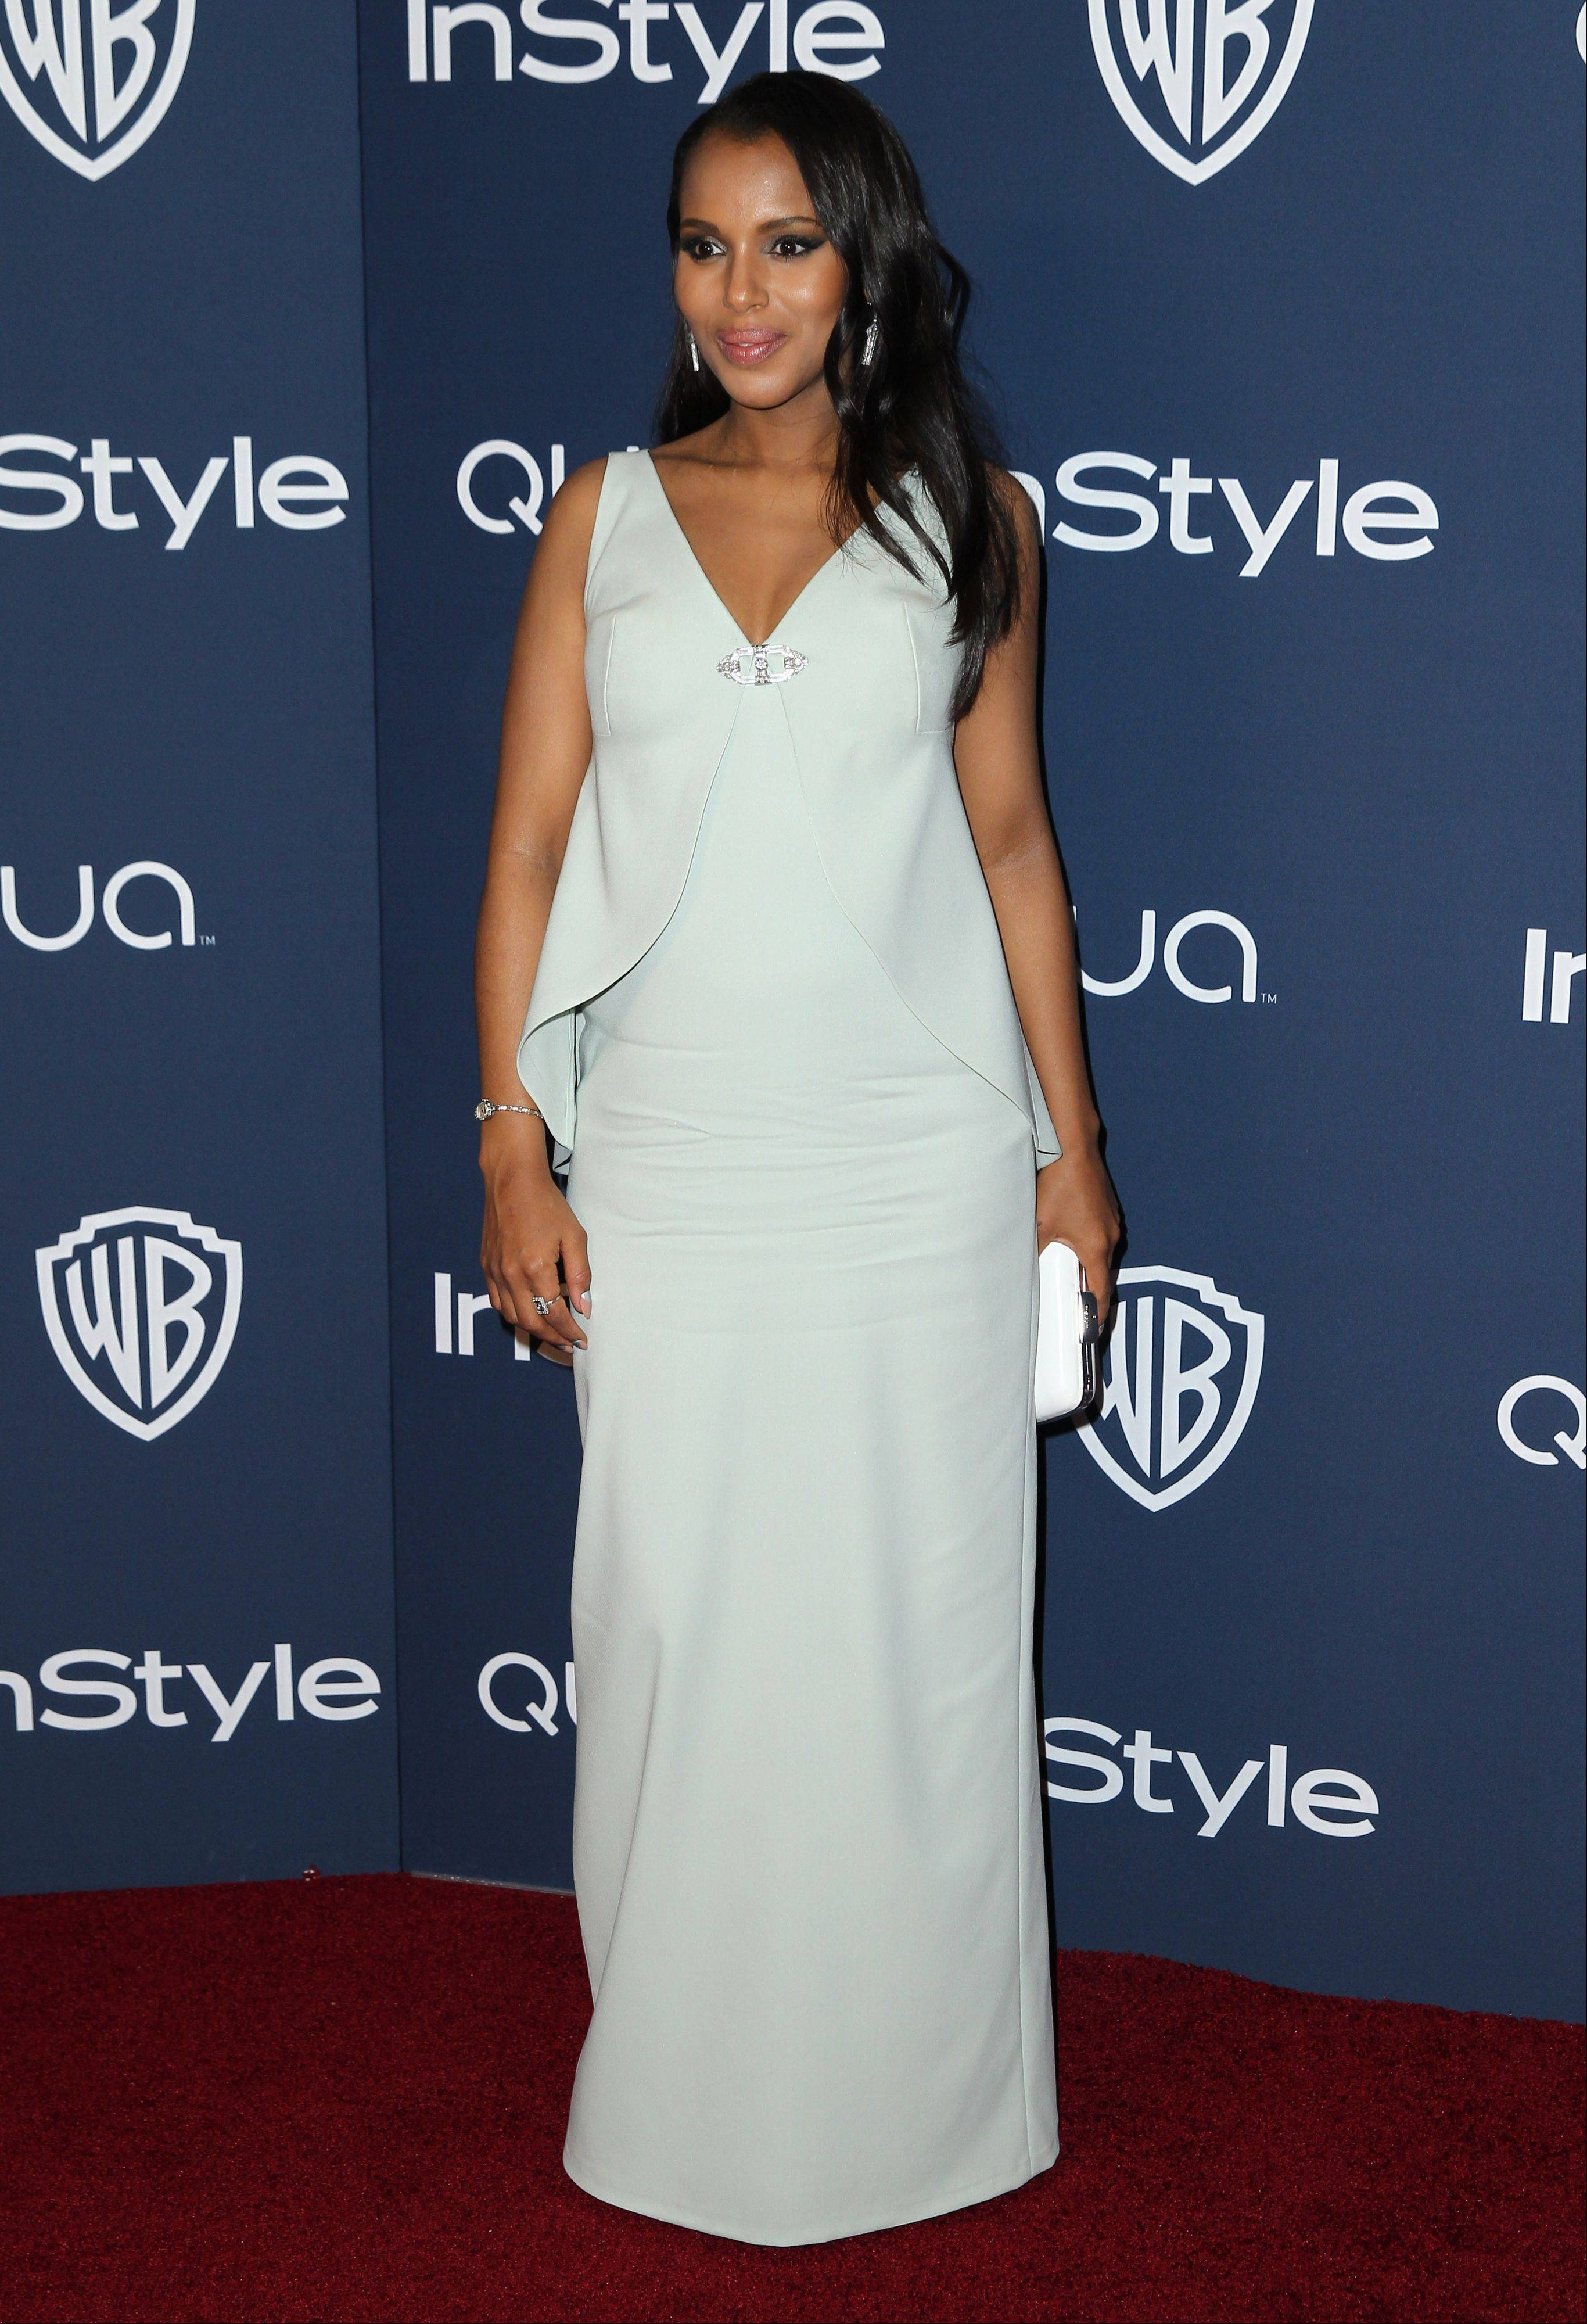 Kerry Washington earned raves for her sleeveless white gown with a low neck and jacket-like top from Balenciaga.